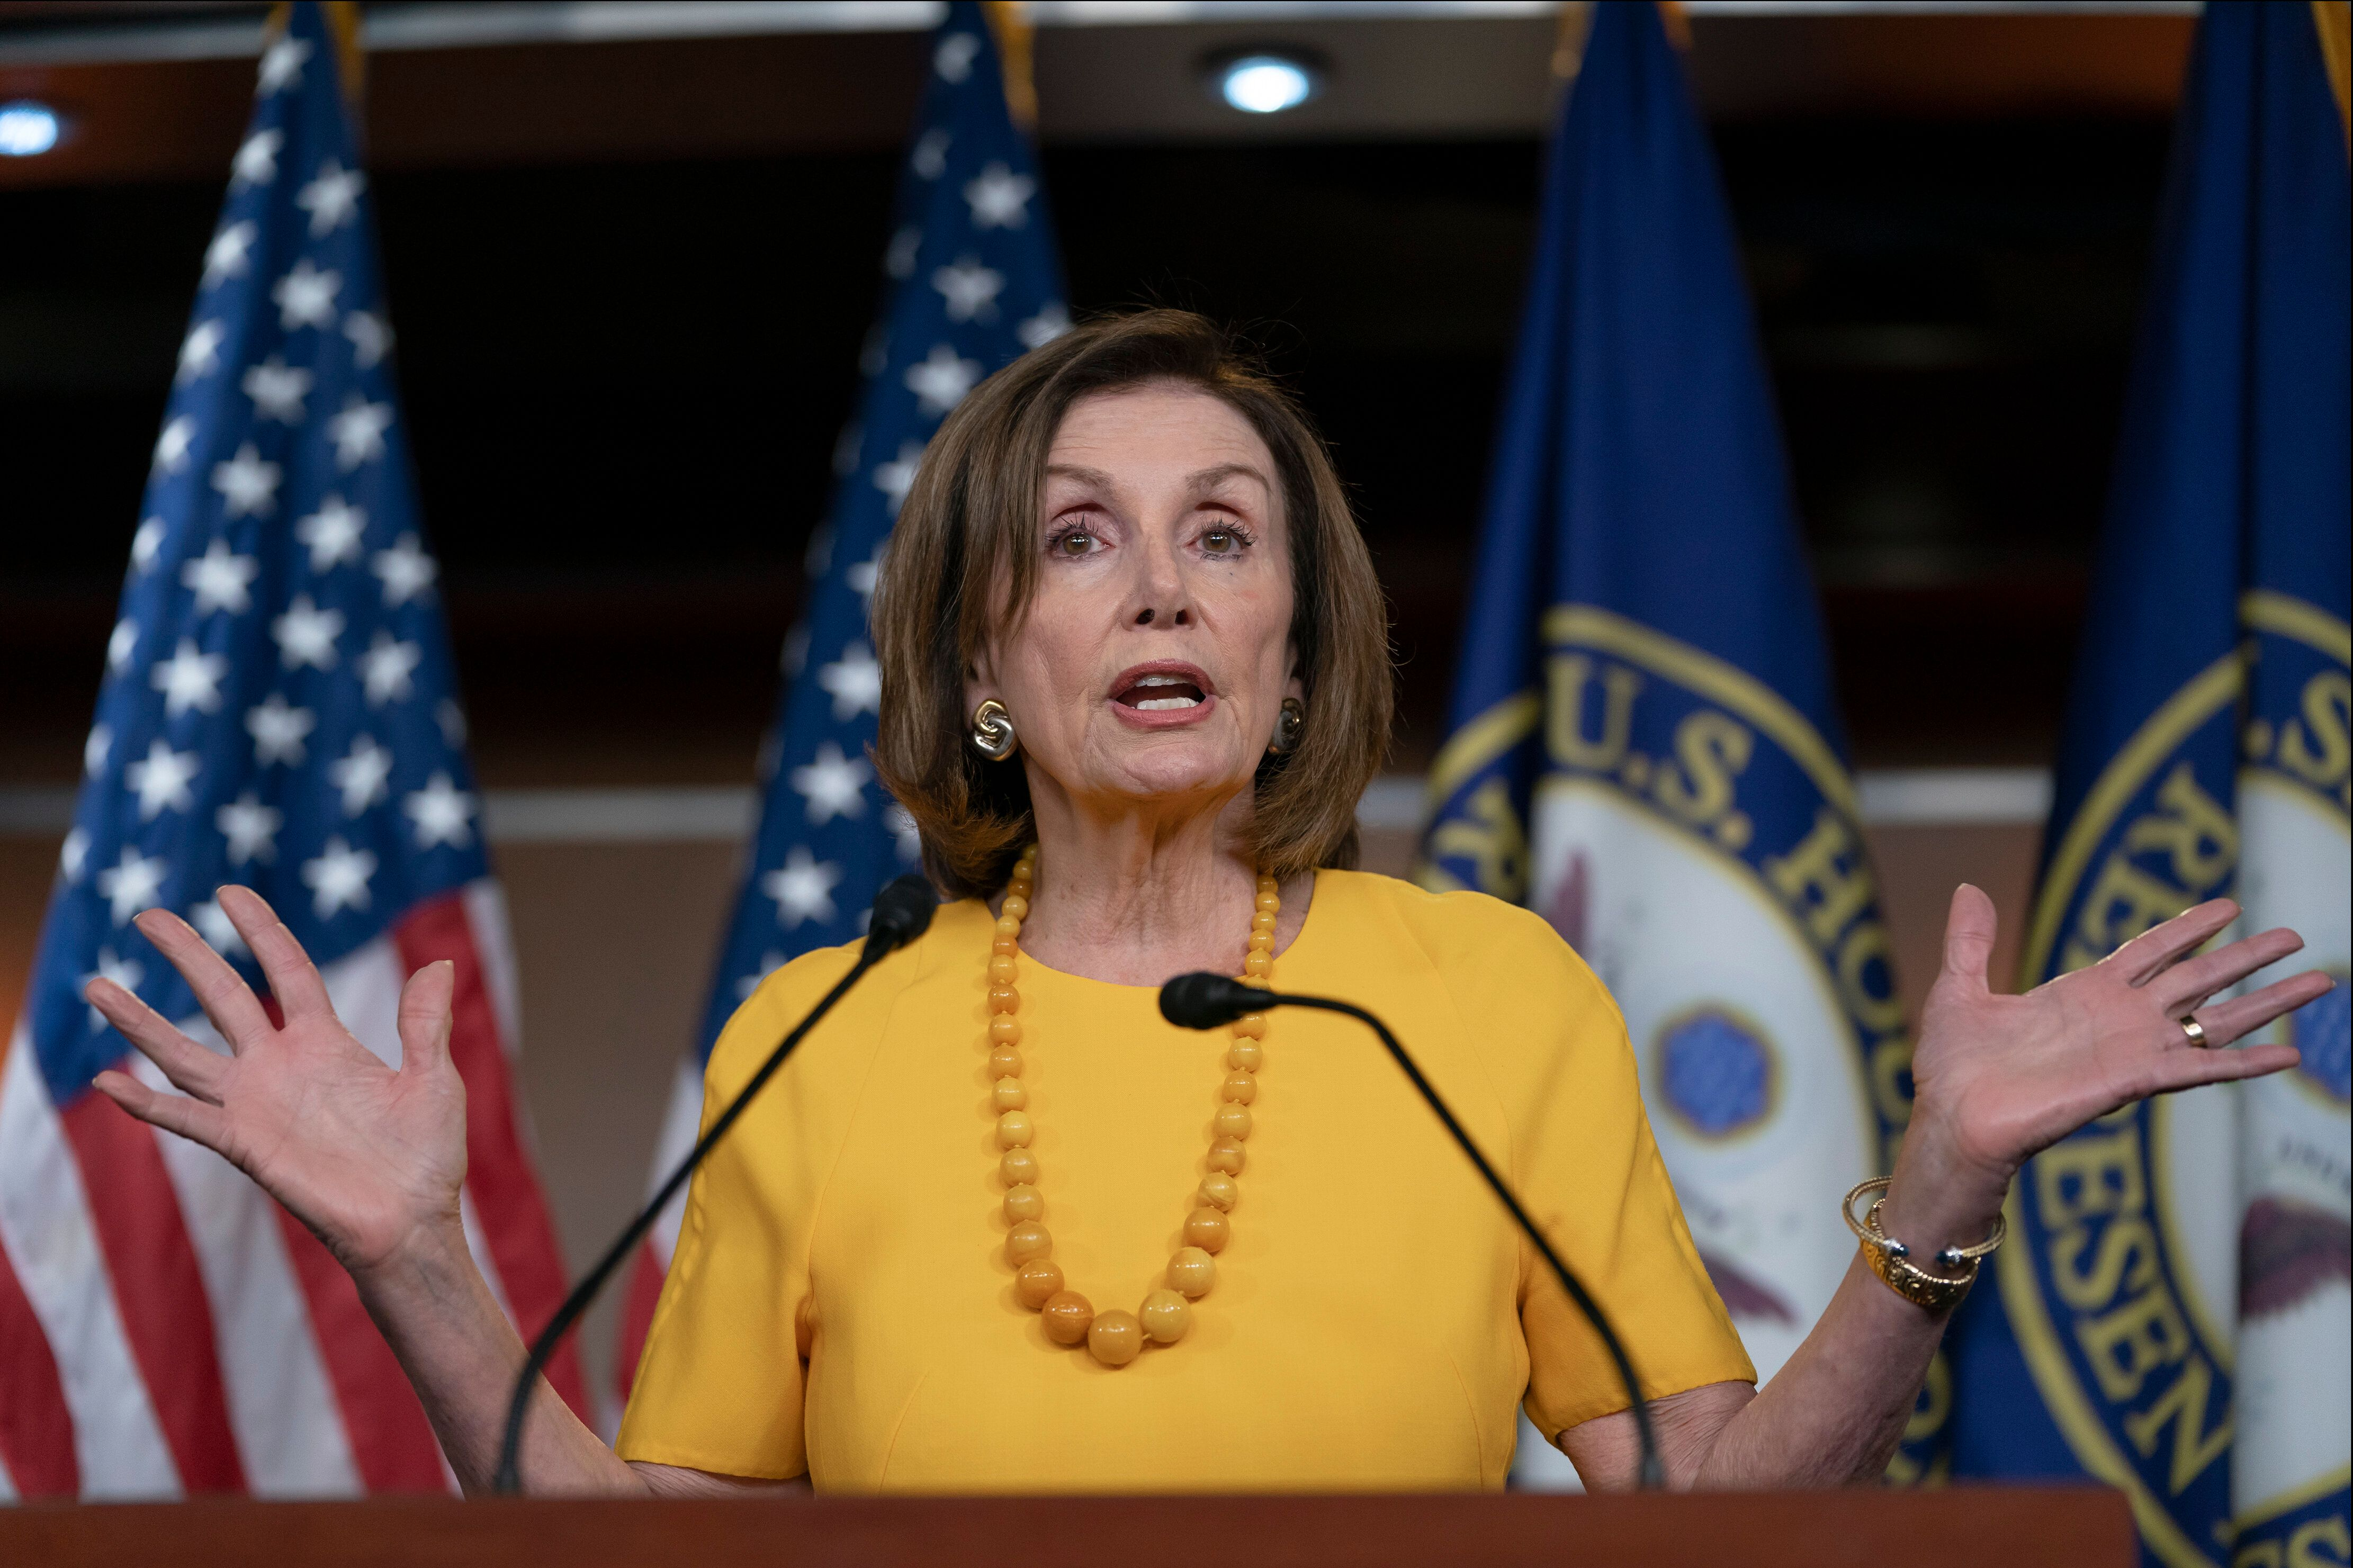 House Speaker Nancy Pelosi (D-Calif.) was not all that popular at Netroots Nation in Philadelphia this weekend.